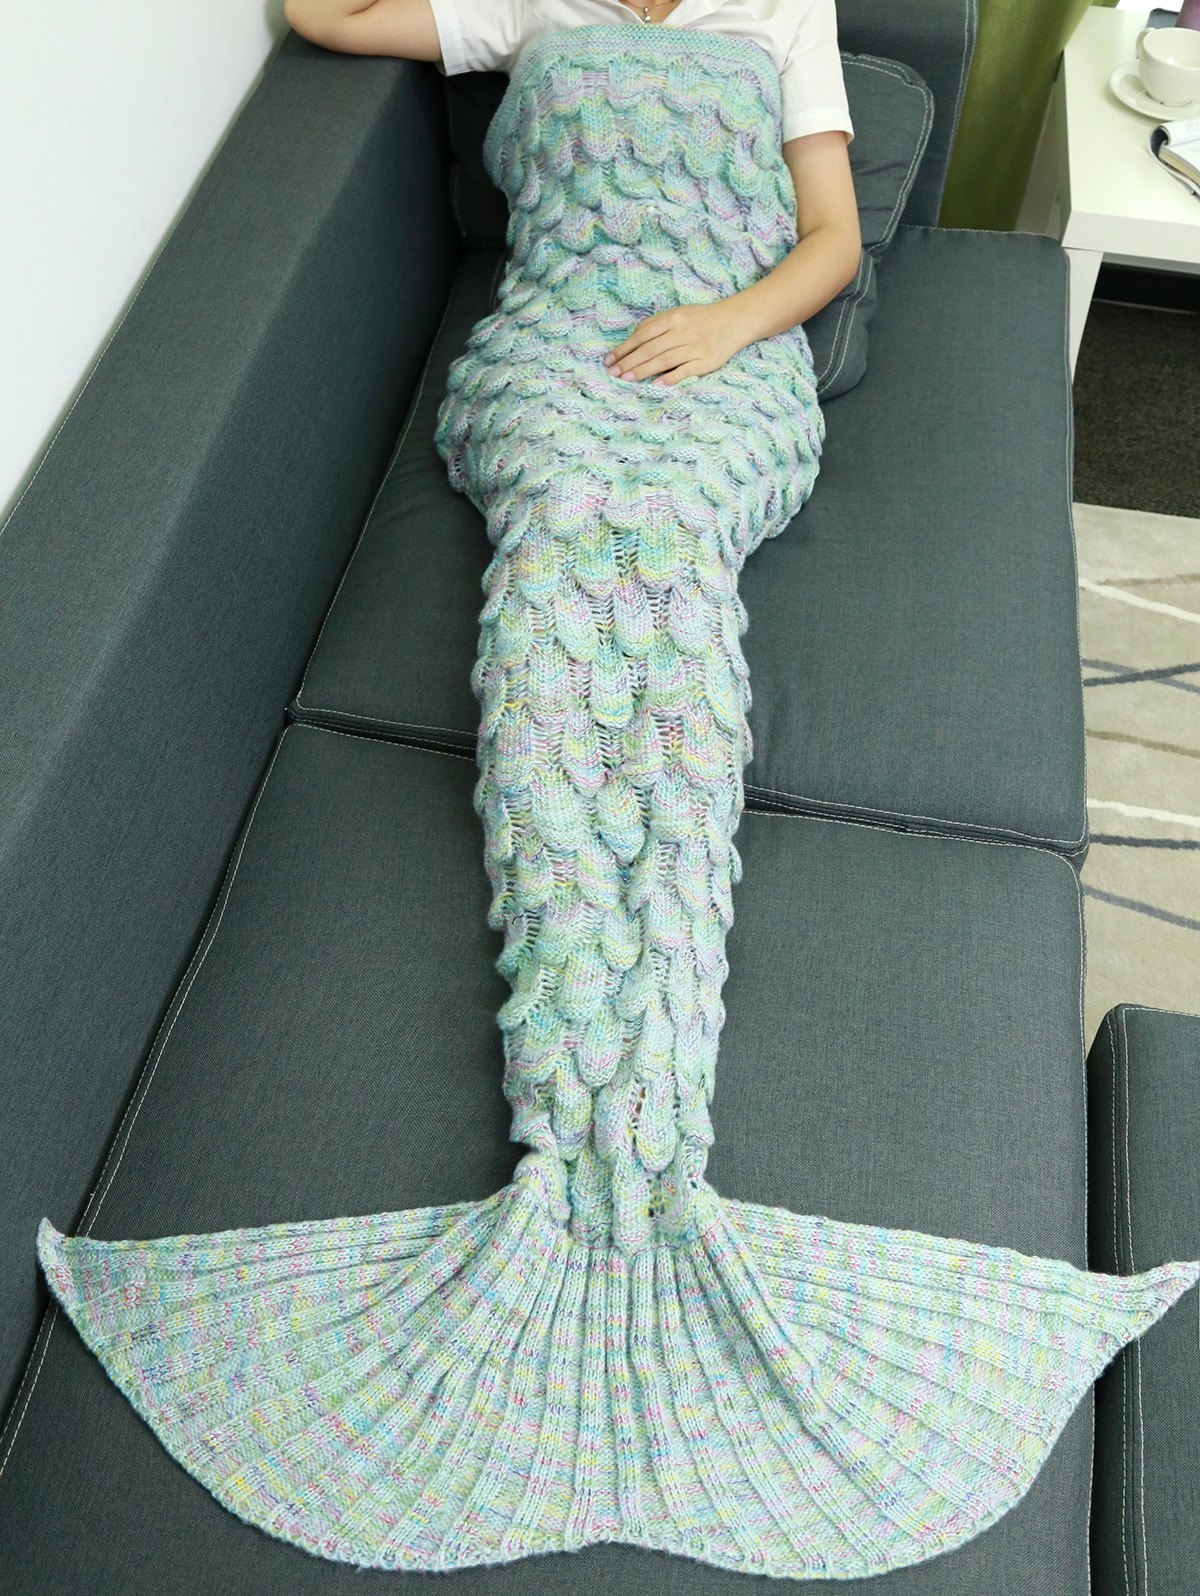 Warmth Hollow Out Design Knitted Mermaid Tail BlanketHOME<br><br>Color: AZURE; Type: Knitted; Material: Acrylic; Pattern Type: Others; Size(L*W)(CM): 180*85CM; Weight: 1.0800kg; Package Contents: 1 x Blanket;